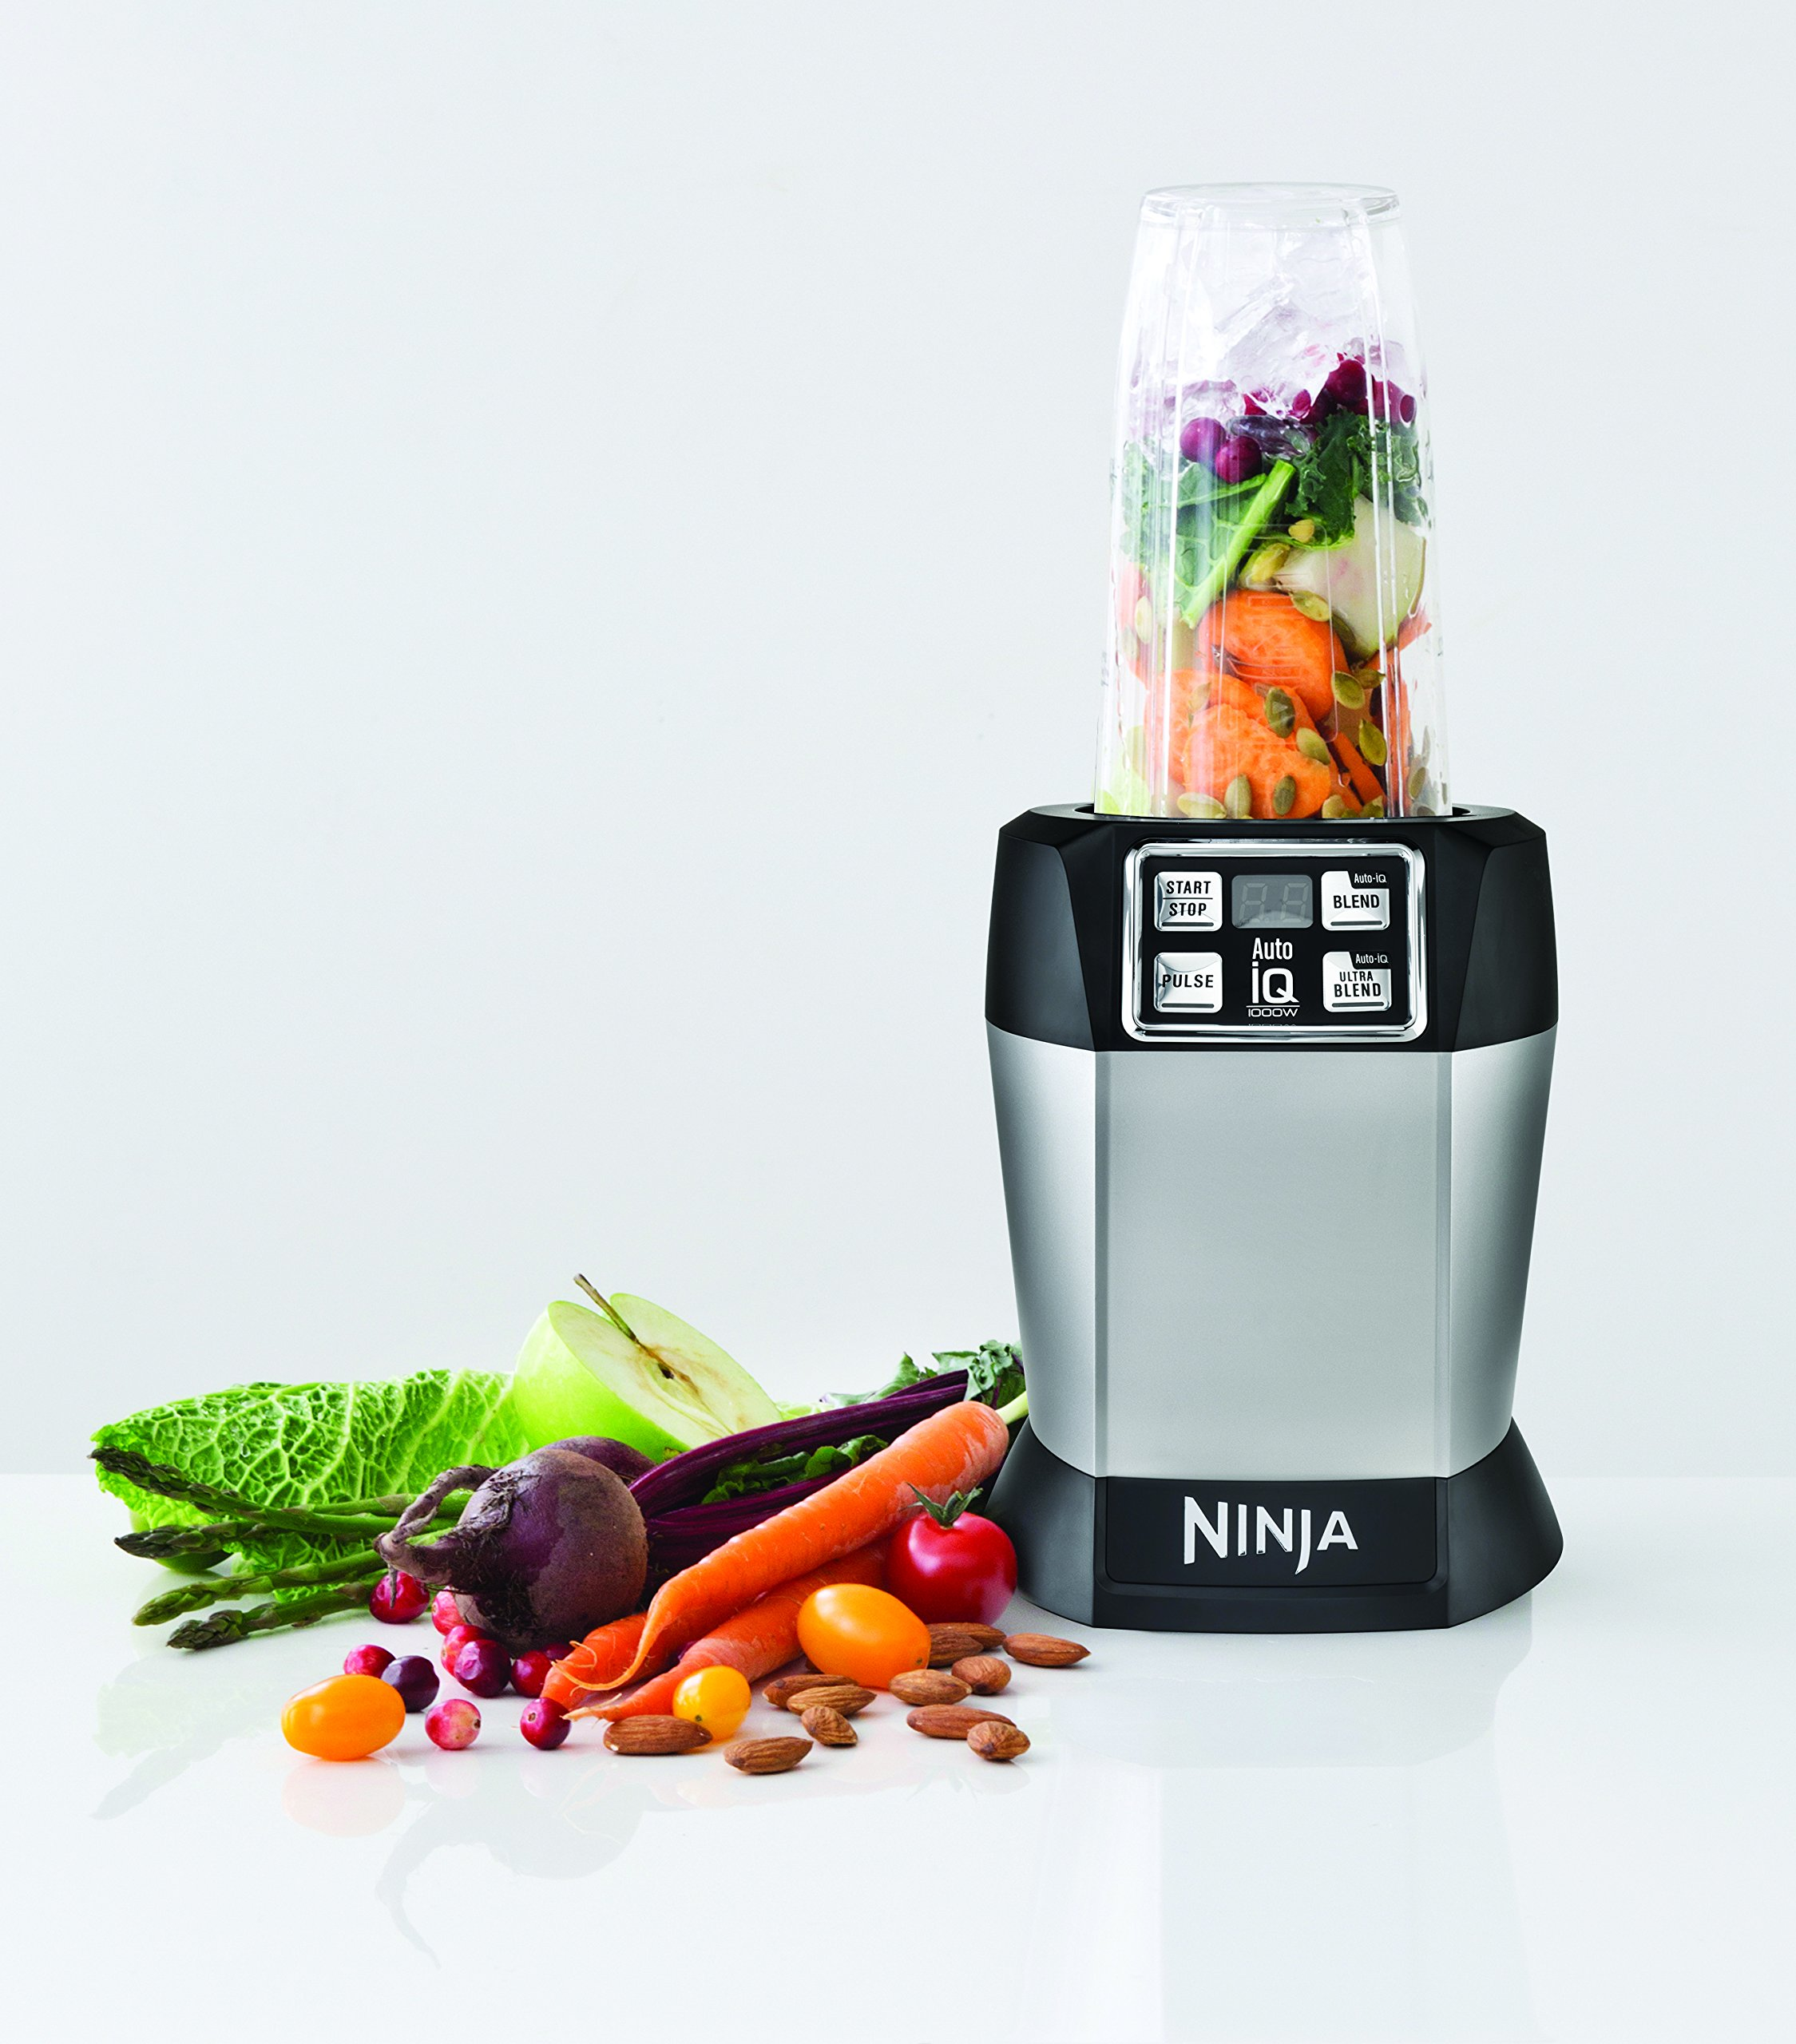 Nutri Ninja Personal Blender with 1000-Watt Auto-iQ Base to Extract Nutrients for Smoothies, Juices and Shakes and 18, 24, and 32-Ounce Cups (BL482) by SharkNinja (Image #3)